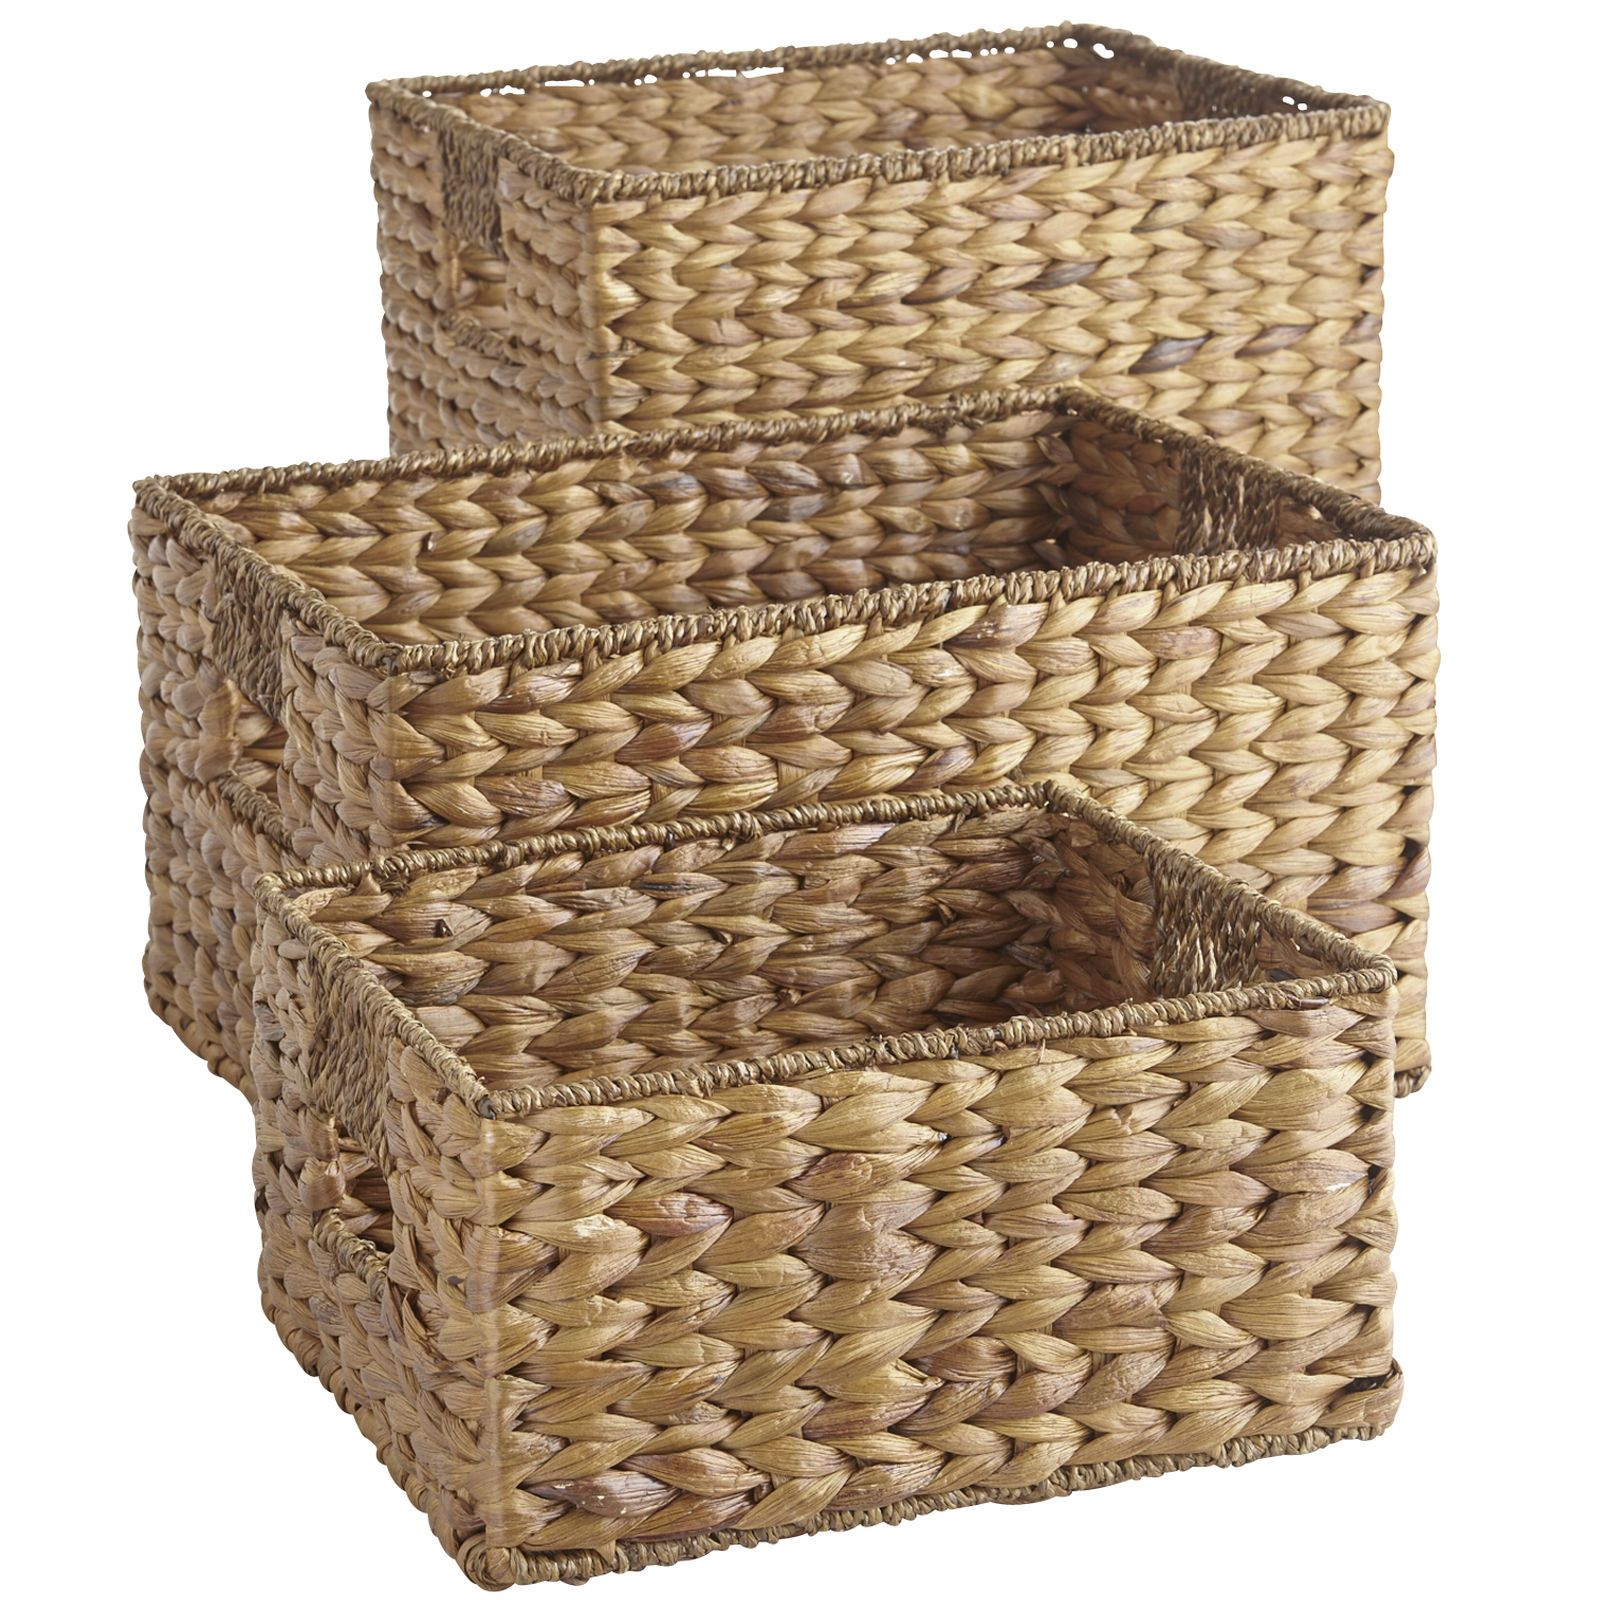 Home And Office Storage That Isn T Made Of Plastic Refreshing These Storage Baskets Are Shelf Baskets Storage Bathroom Basket Storage Wicker Baskets Storage